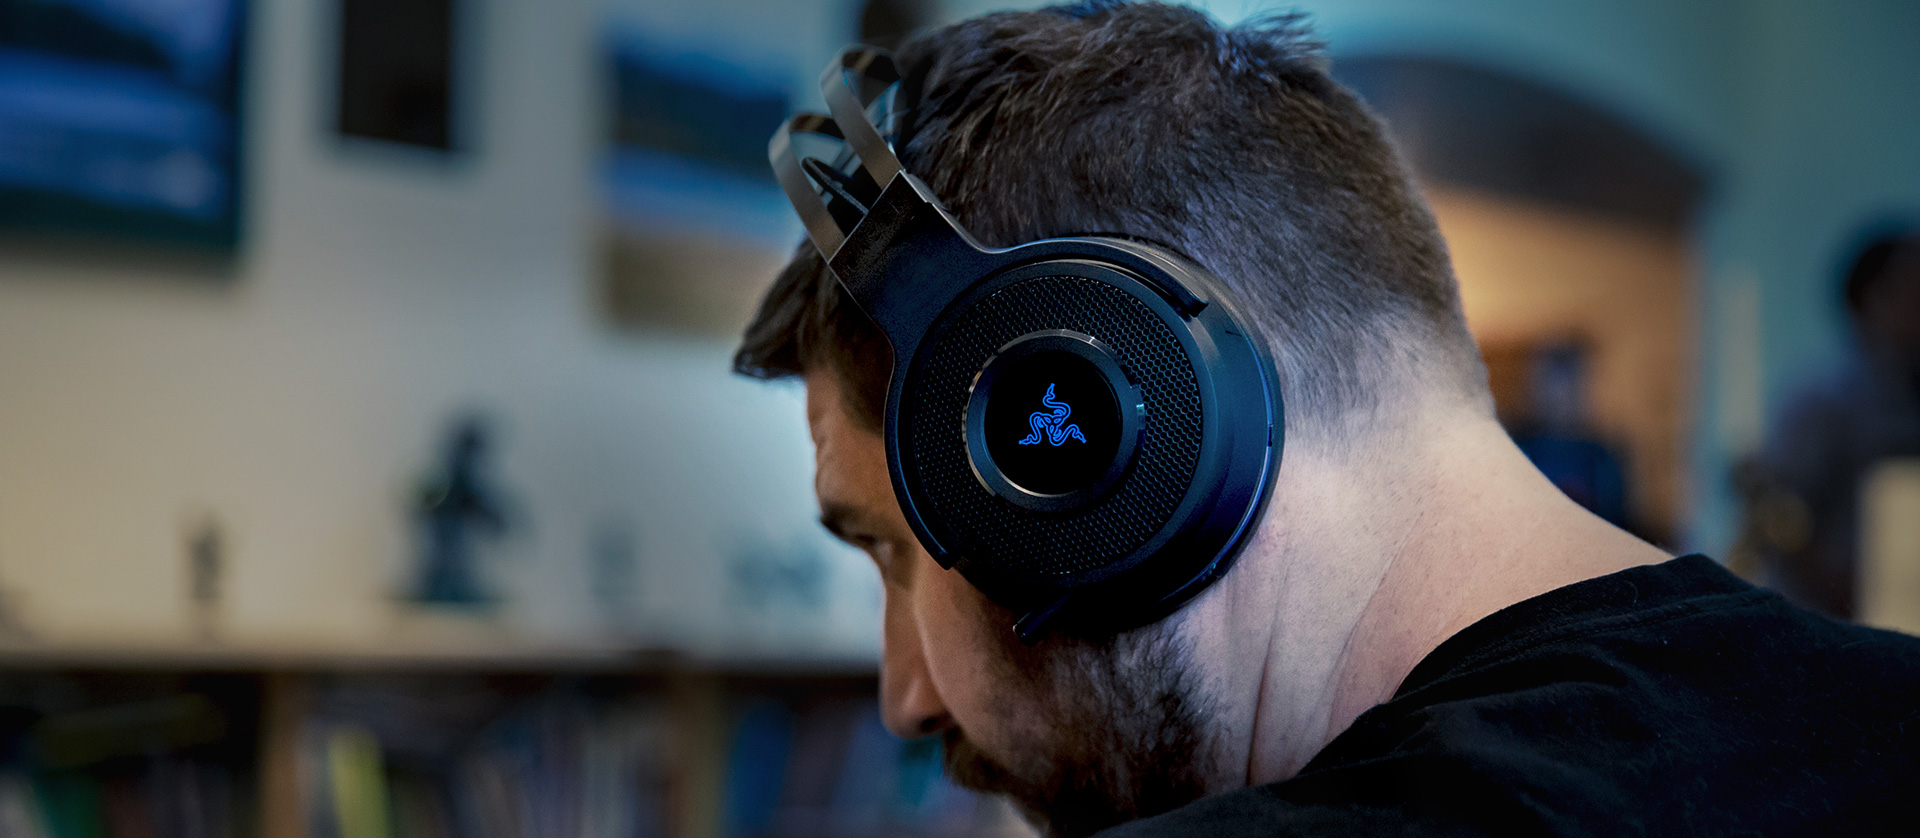 Razer Thresher Ultimate For Playstation 4 Gaming Headset Hammerhead Bt Bluetooth Wireless Premium Earphone Headphone Introducing The With Dolby Digital And Technology Ps4